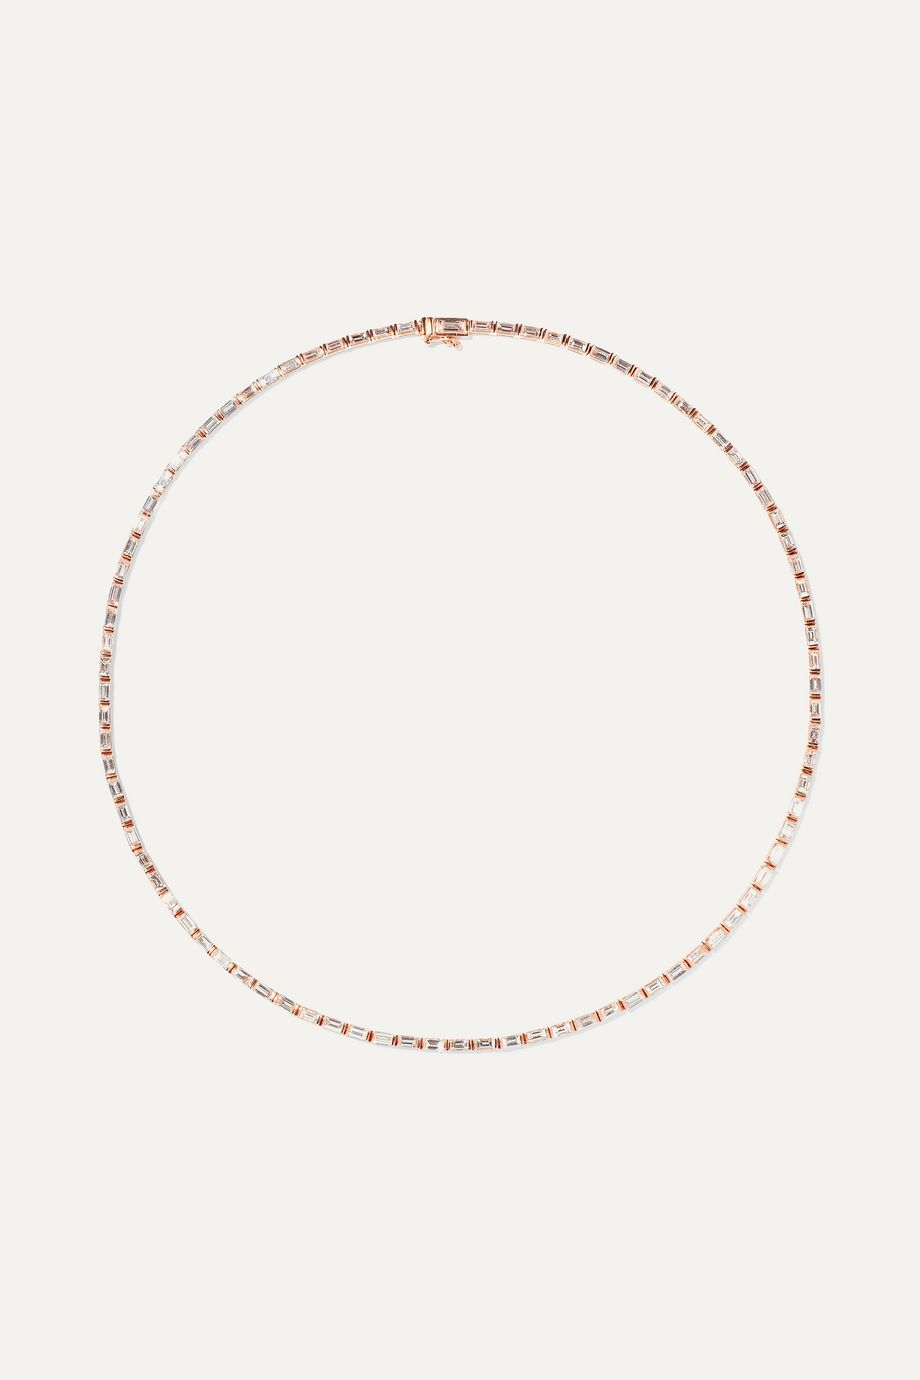 Anita Ko 18-karat rose gold diamond choker